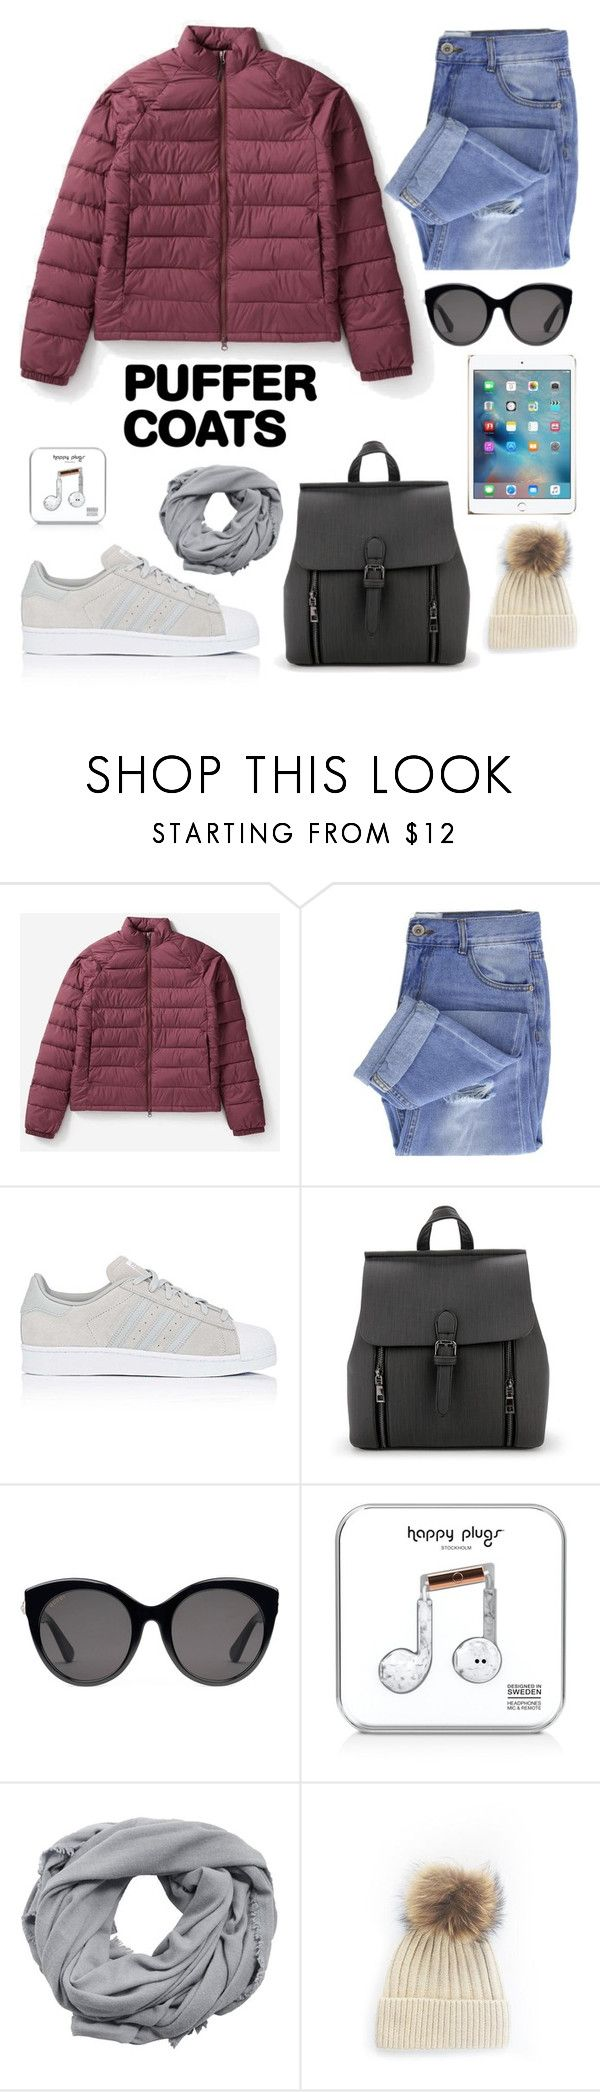 """Puffer coats"" by moni-ballerina ❤ liked on Polyvore featuring Everlane, Taya, adidas, Gucci, Happy Plugs and MANGO"